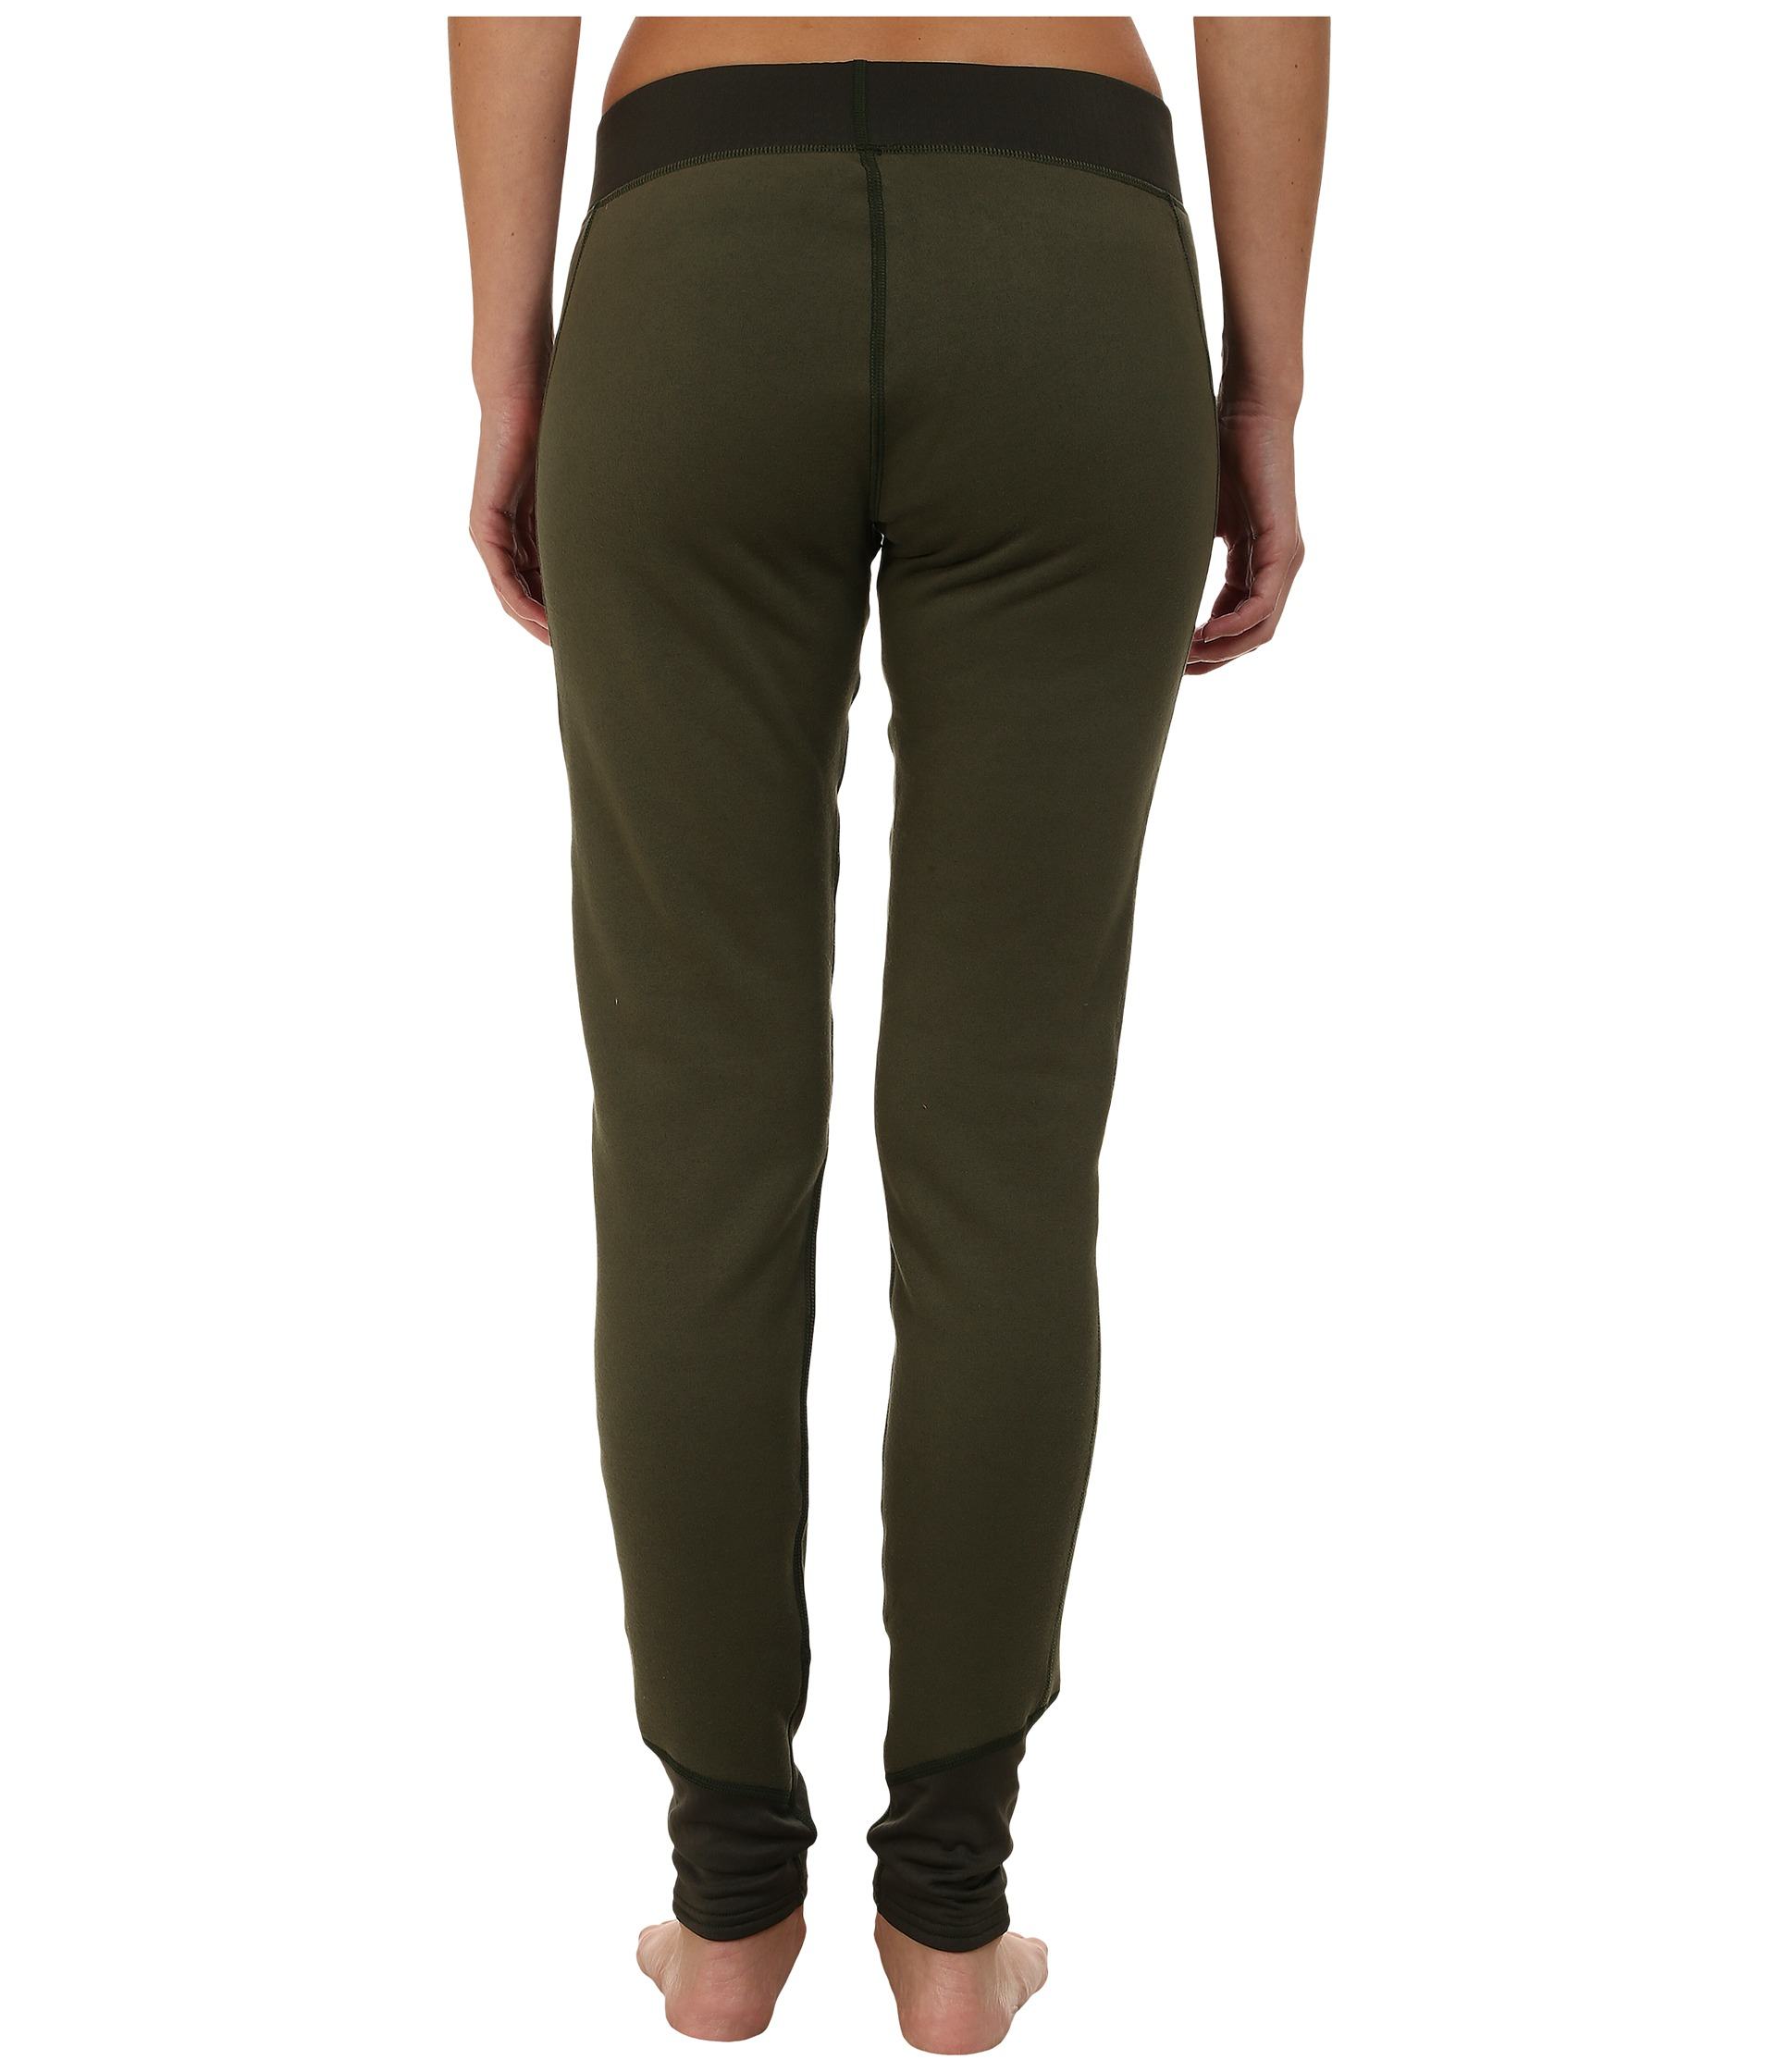 1cfc1ab23 Under Armour Ua Treestand Base Legging in Green - Lyst